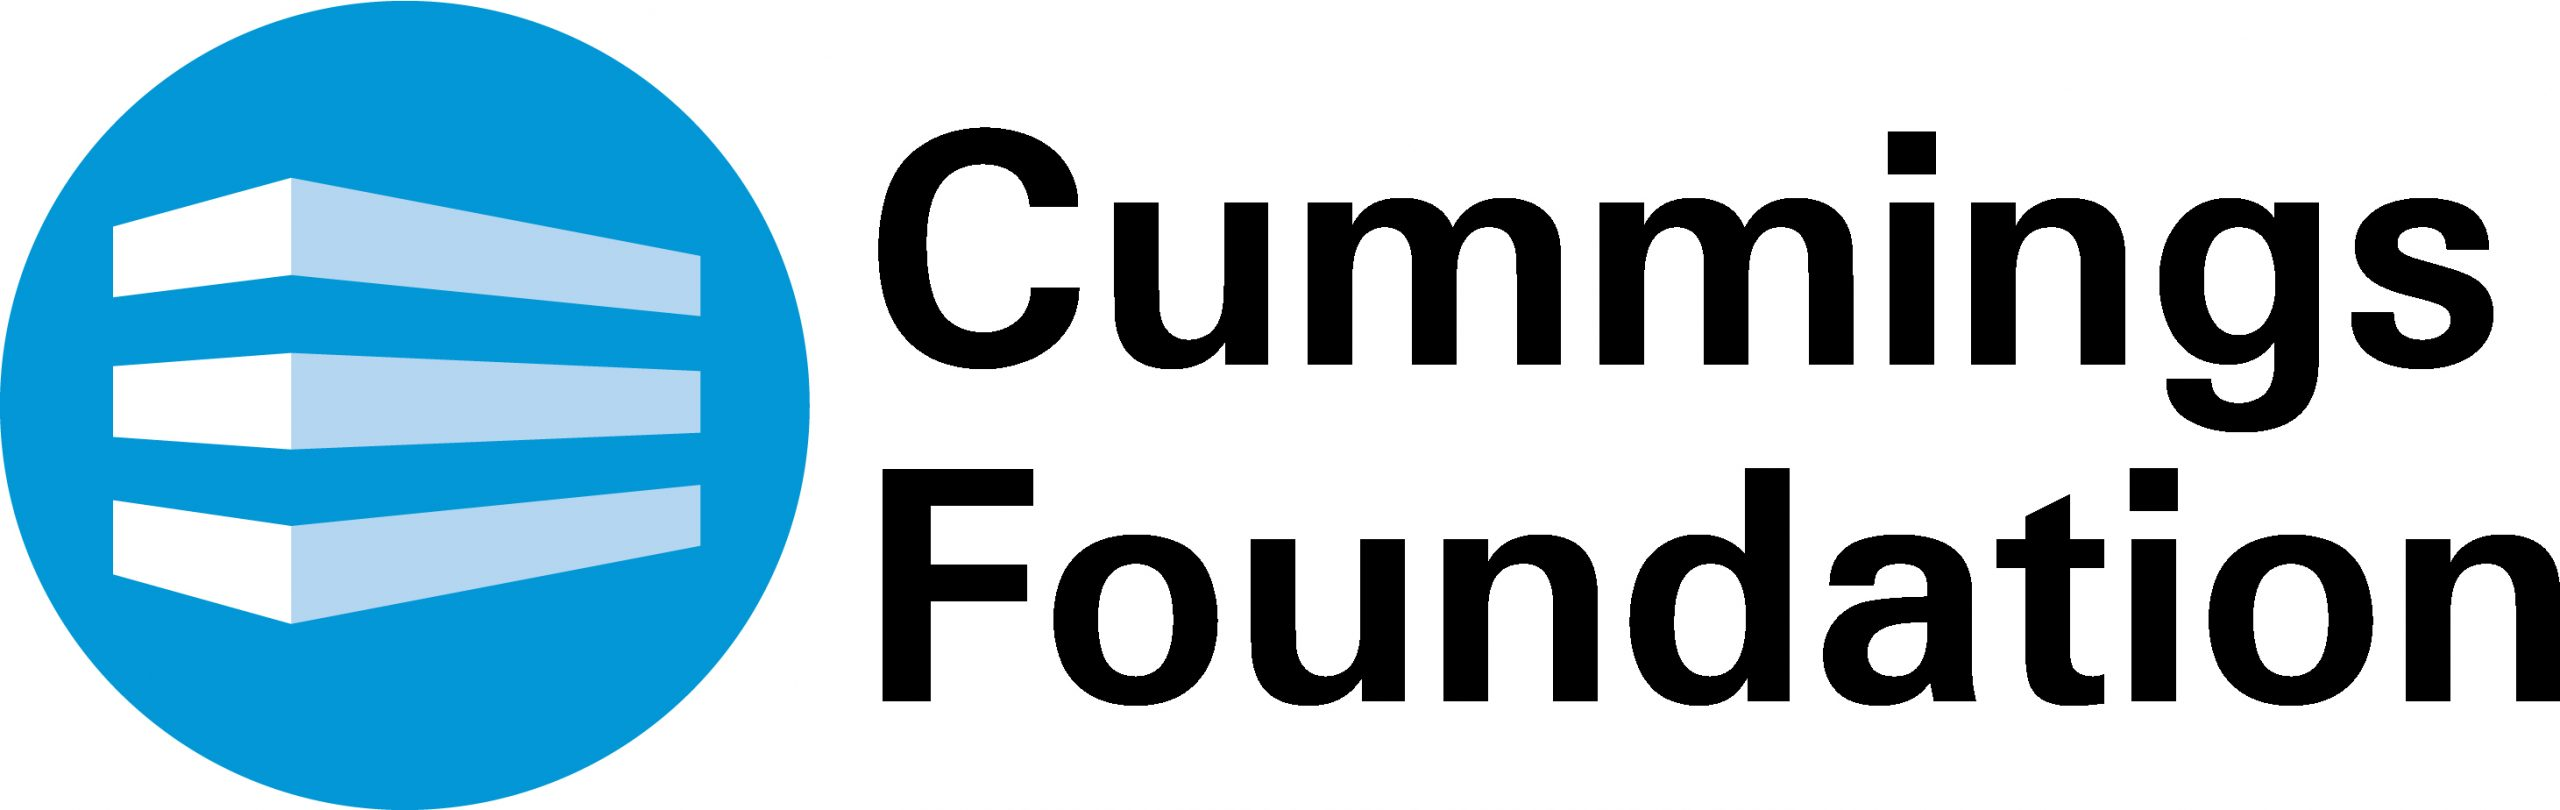 Cummins_Foundation_Logo